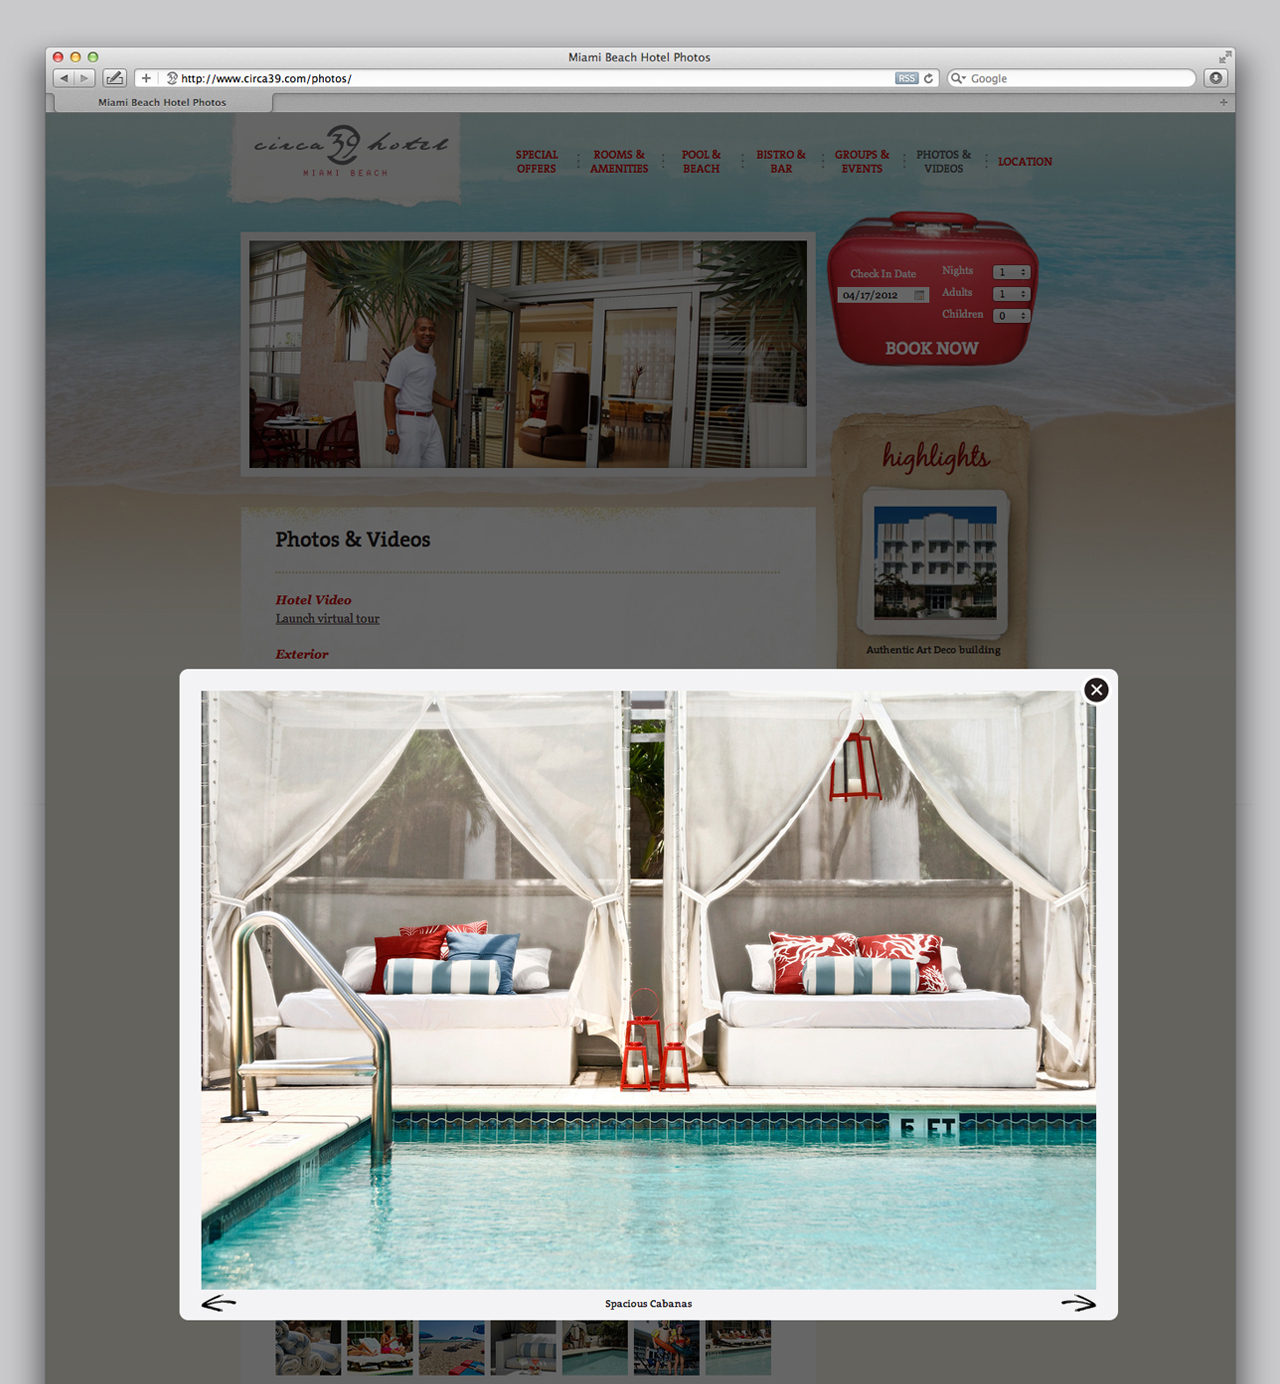 circa-39-hotel-website-design-by-camilo-rojas-5_o.jpg